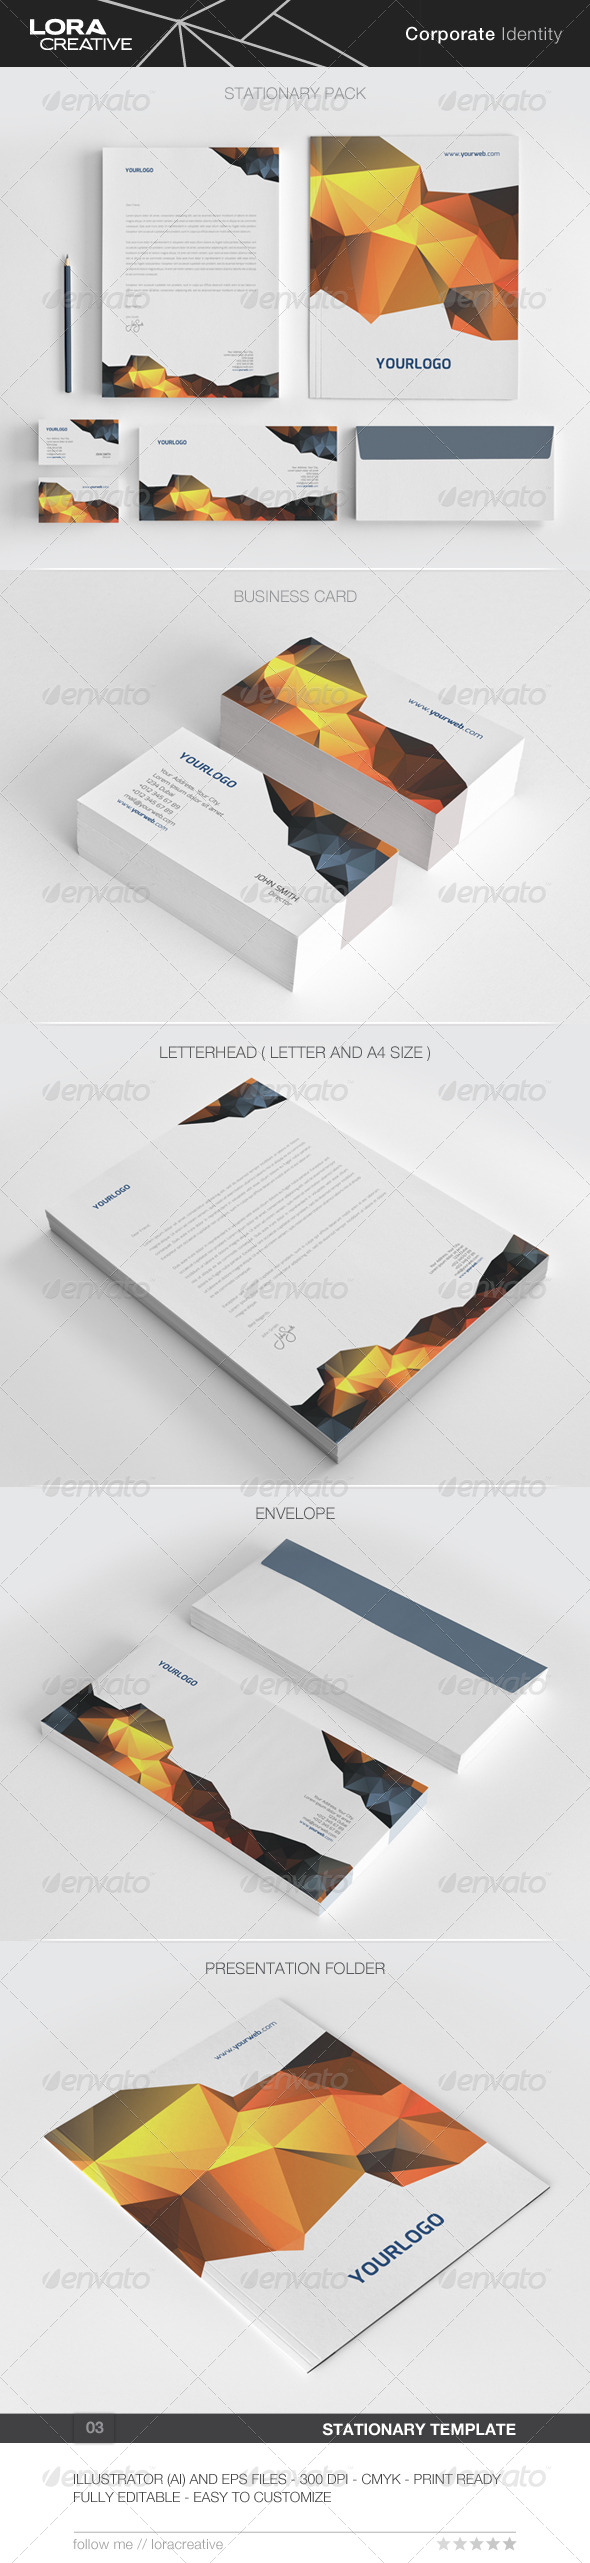 GraphicRiver Modern Stationary Pack 03 7326873